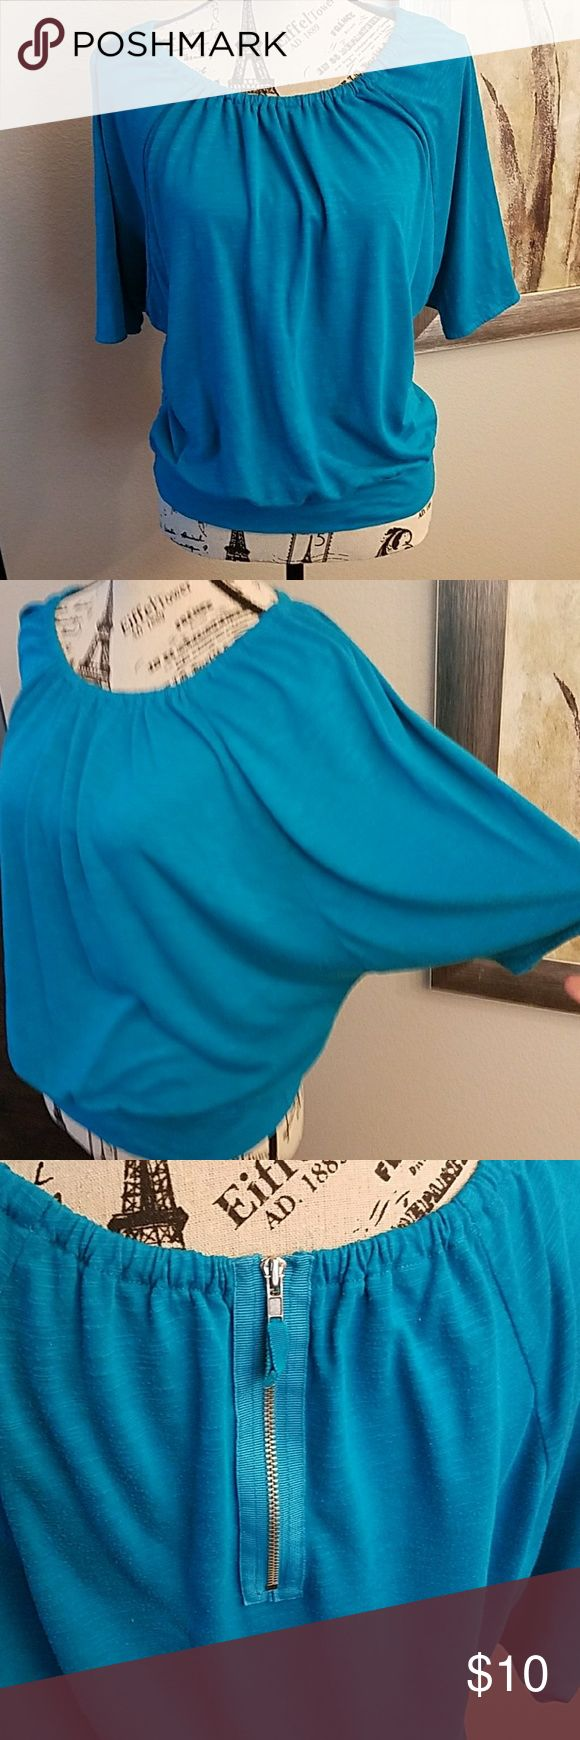 Ann Taylor LOFT top Oh how i love the zipper detail on the back!!! This top is in great condition and sort of teal color (4th photo is closest) and if you have brown eyes, they will definitely pop with this color! LOFT Tops